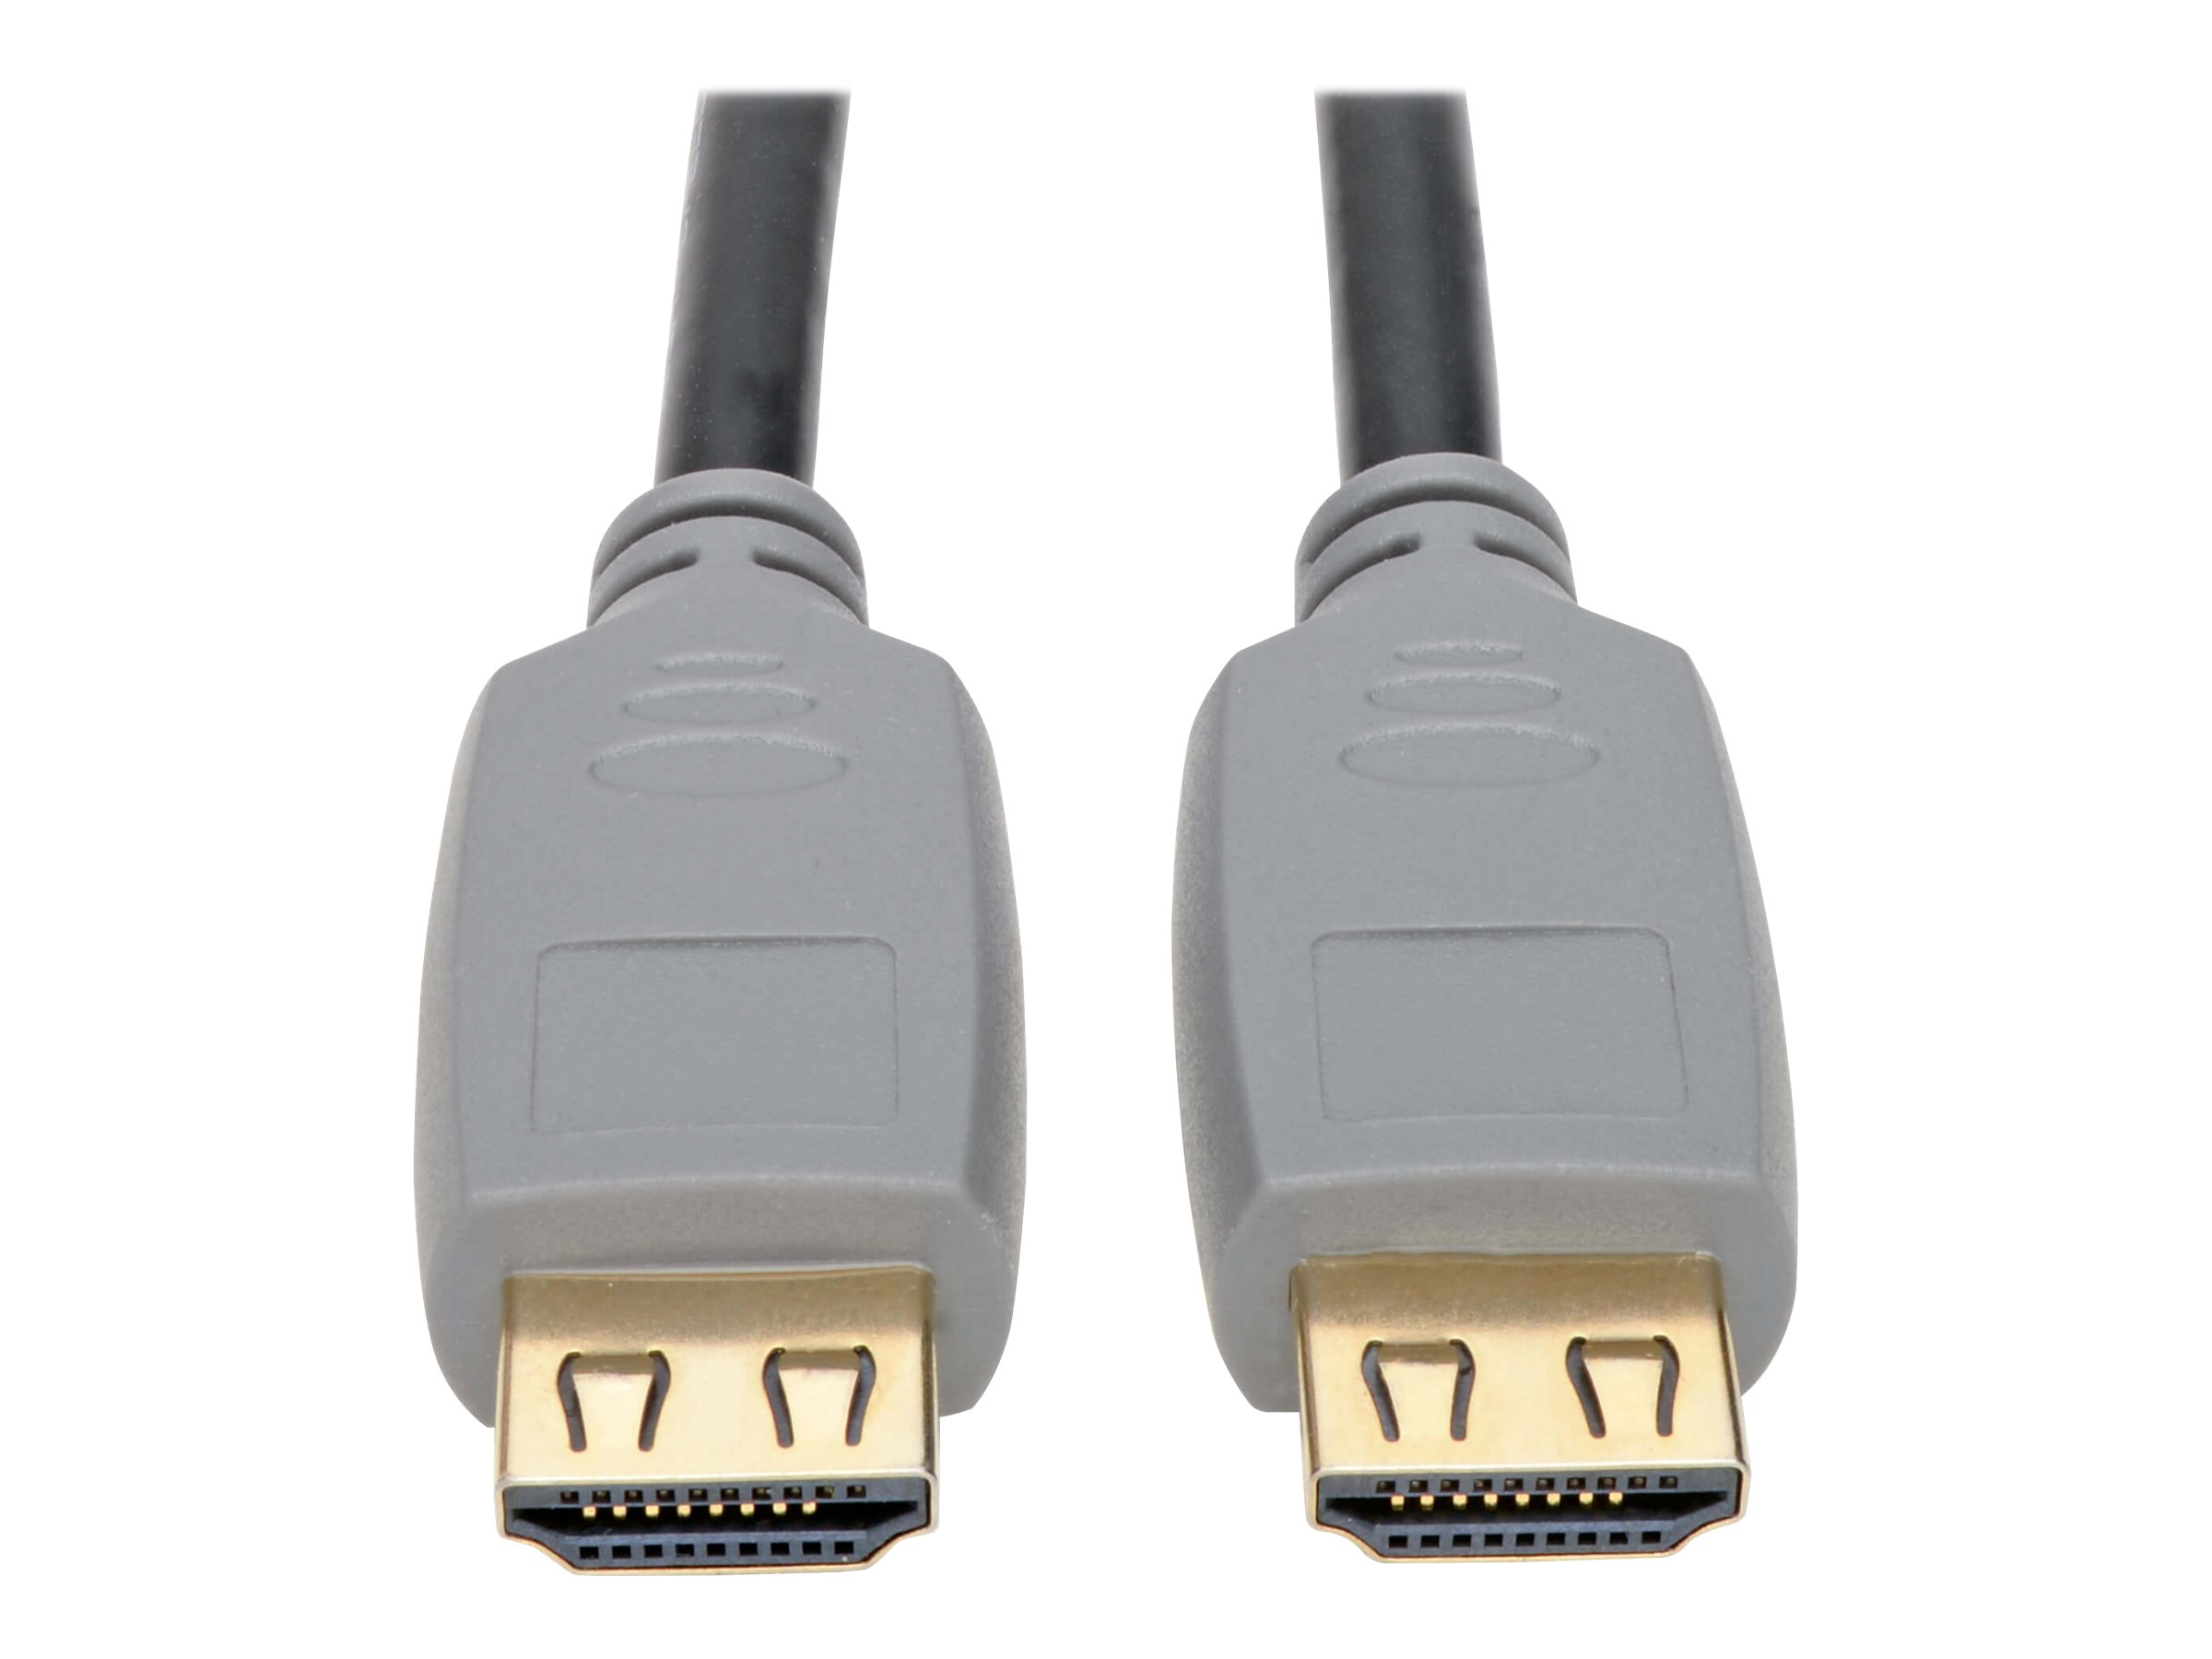 Tripp Lite High-Speed HDMI Cable with Gripping Connectors 4K 60 Hz 4:4:4 M/M Black 6ft - HDMI cable - 1.83 m